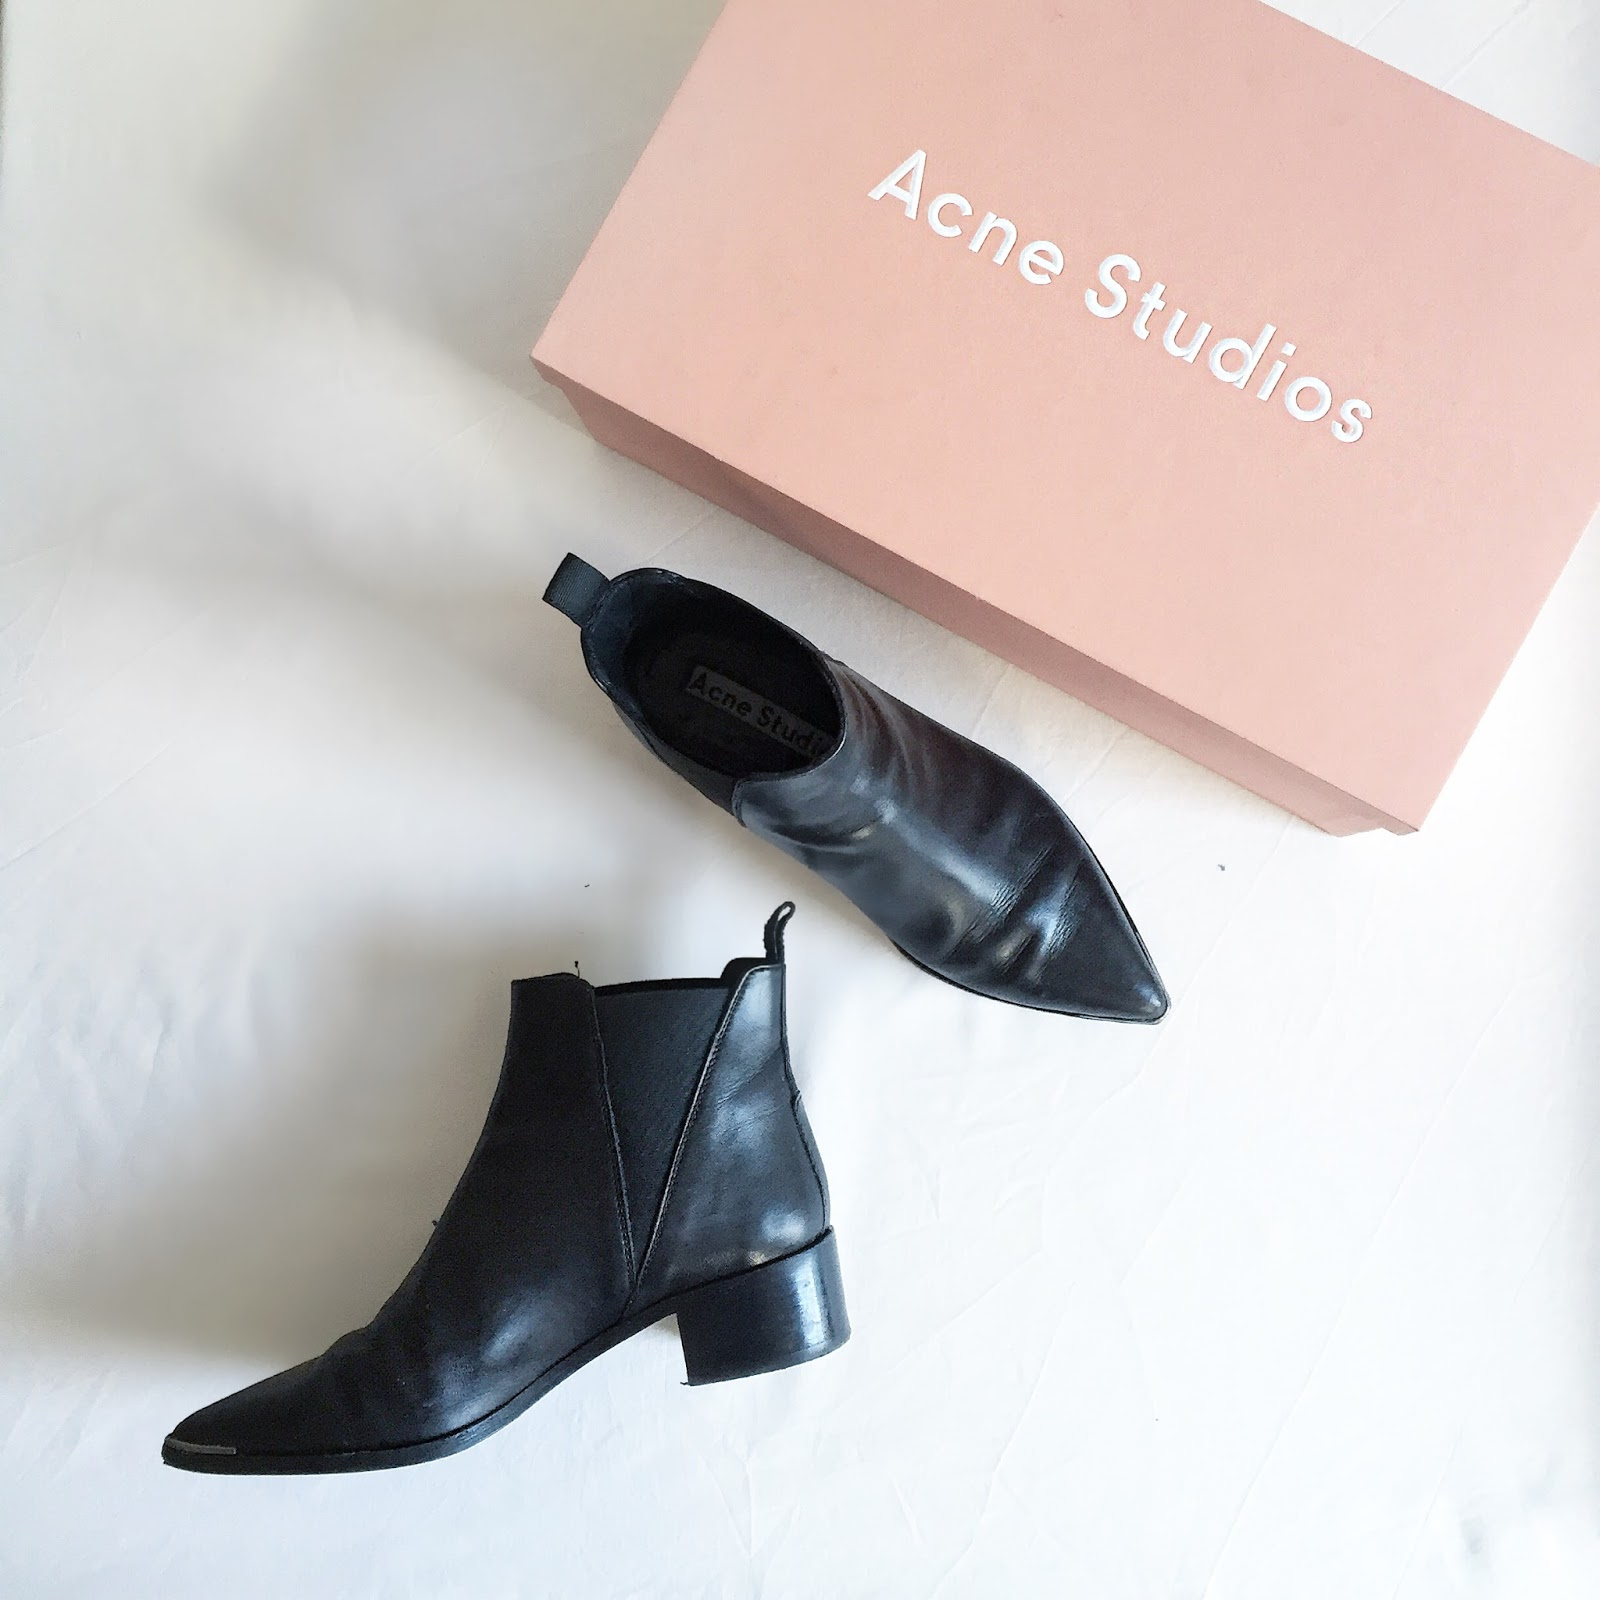 acne jensen ankle boot dupes and look a likes